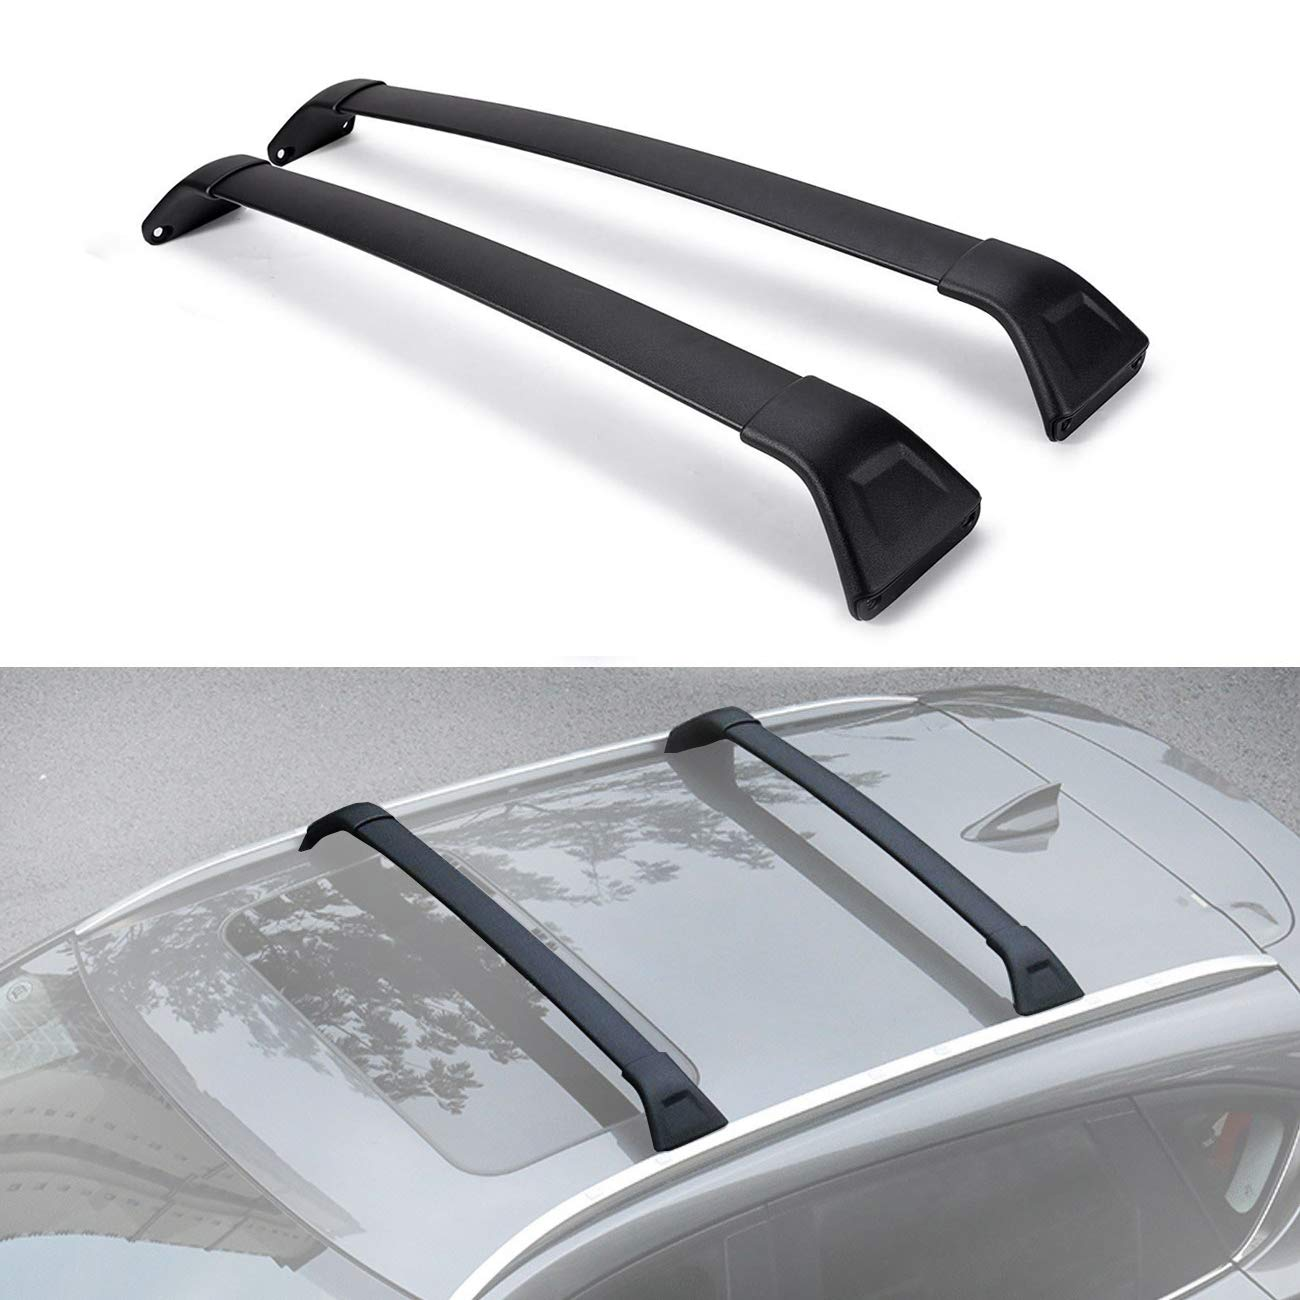 Factory Side Rails Needed ALAVENTE Roof Rack CrossBars for Mazda CX5 2017-2018